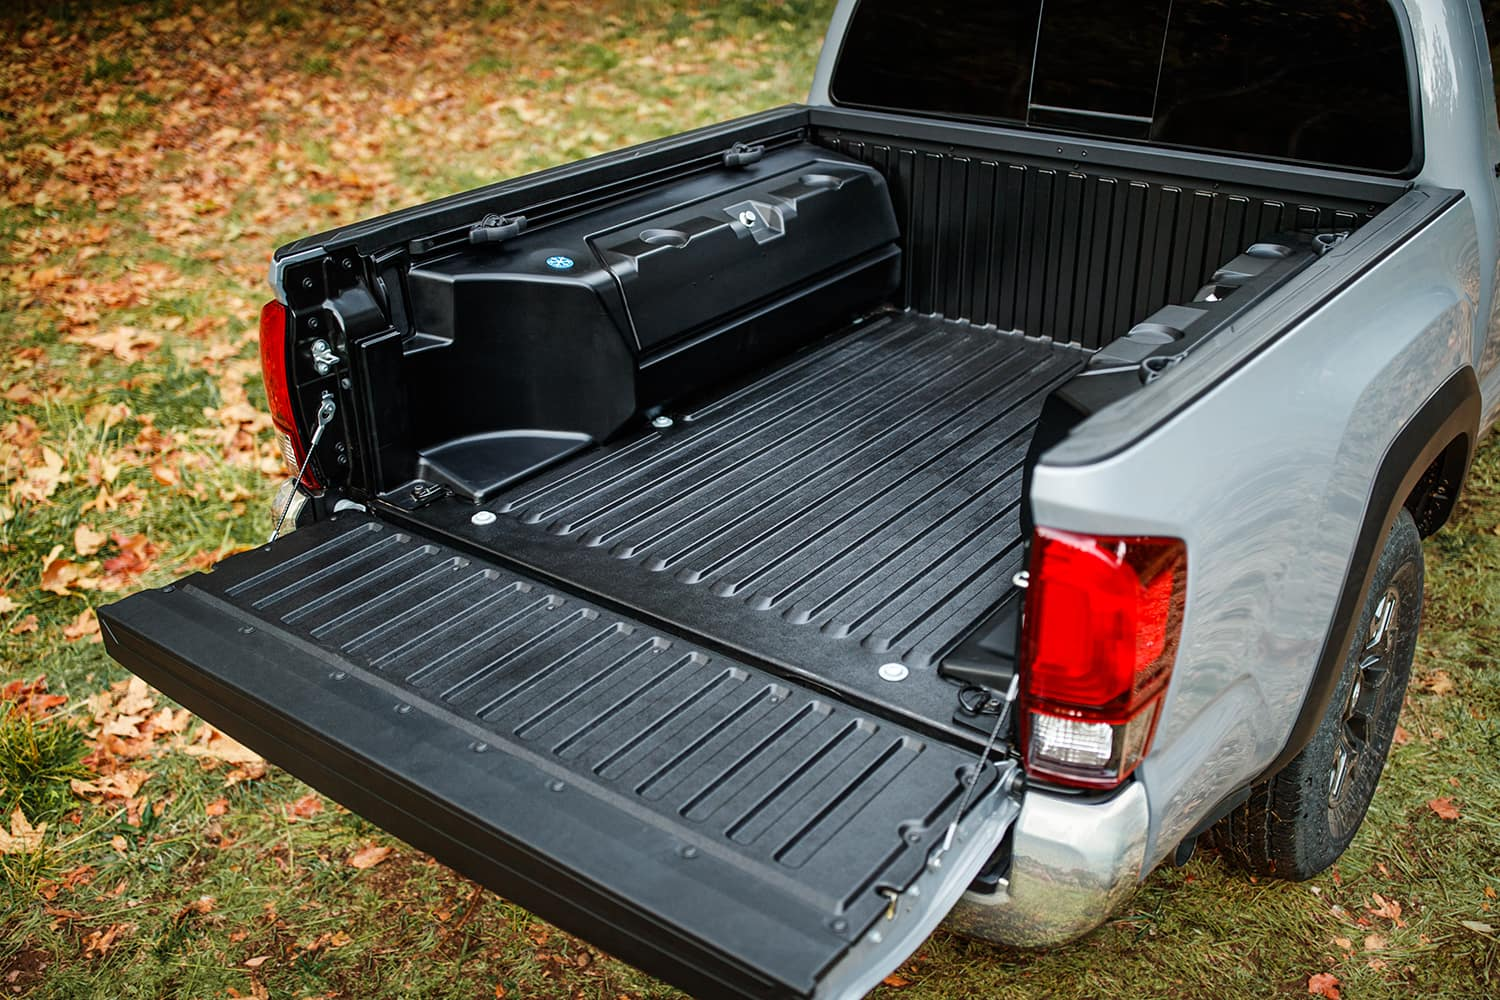 Accessories that help keep your Toyota protected at Halterman's Toyota in East Stroudsburg   Protected Toyota Tacoma bed liner and lockable bed storage